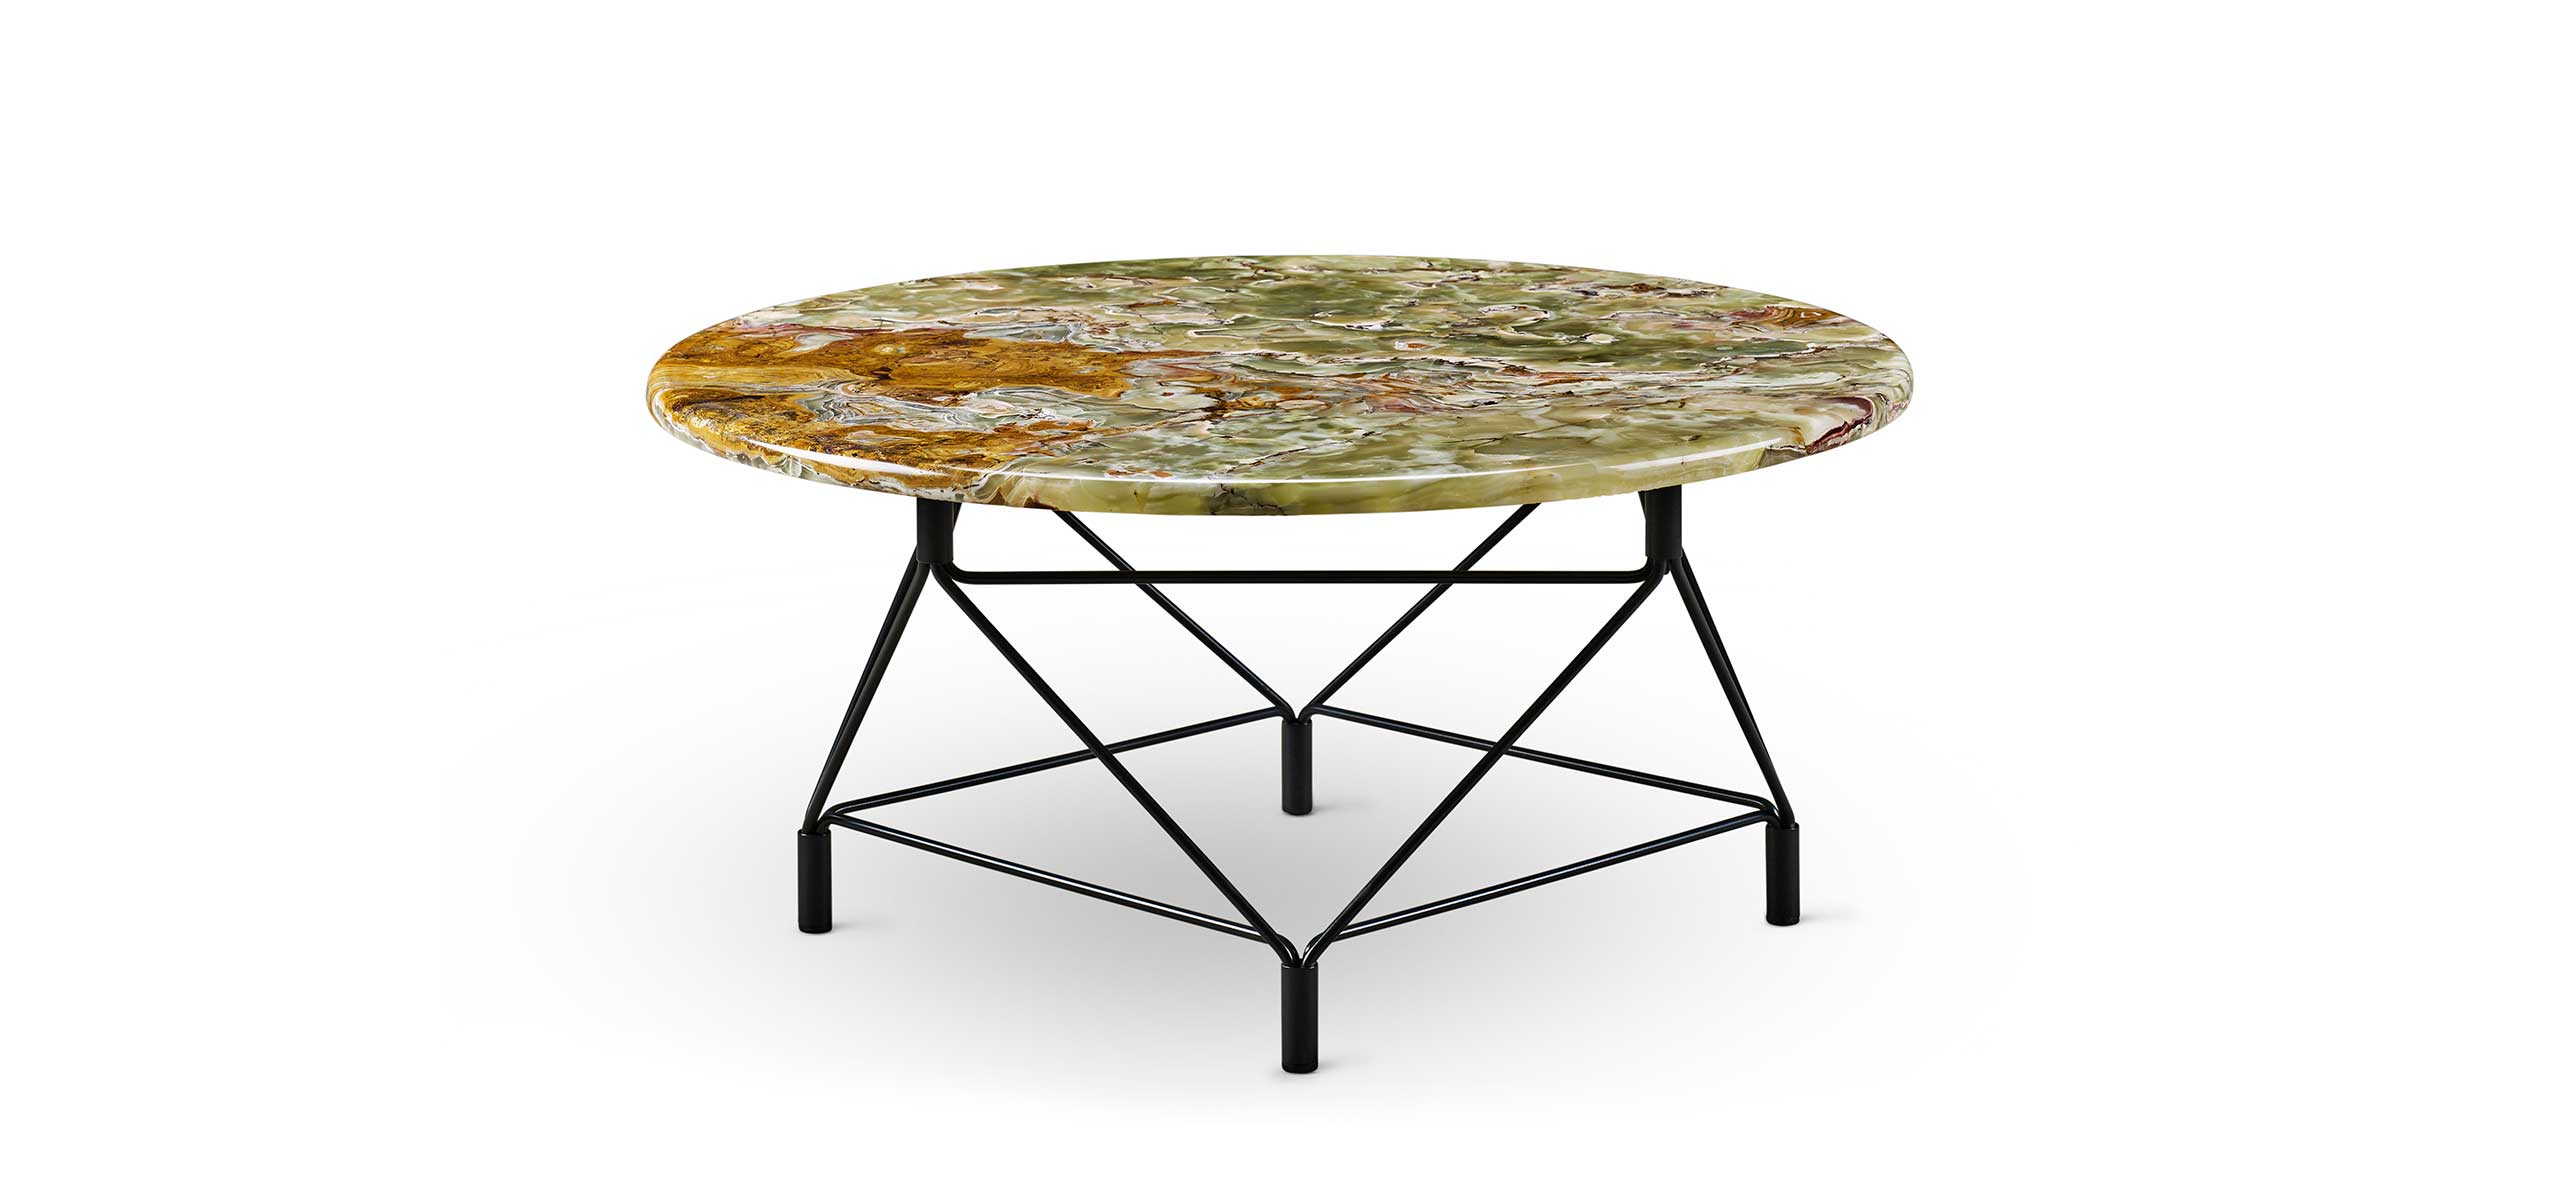 Spider table with Onyx marble plate Ø80 cm and black frame 325415.jpg